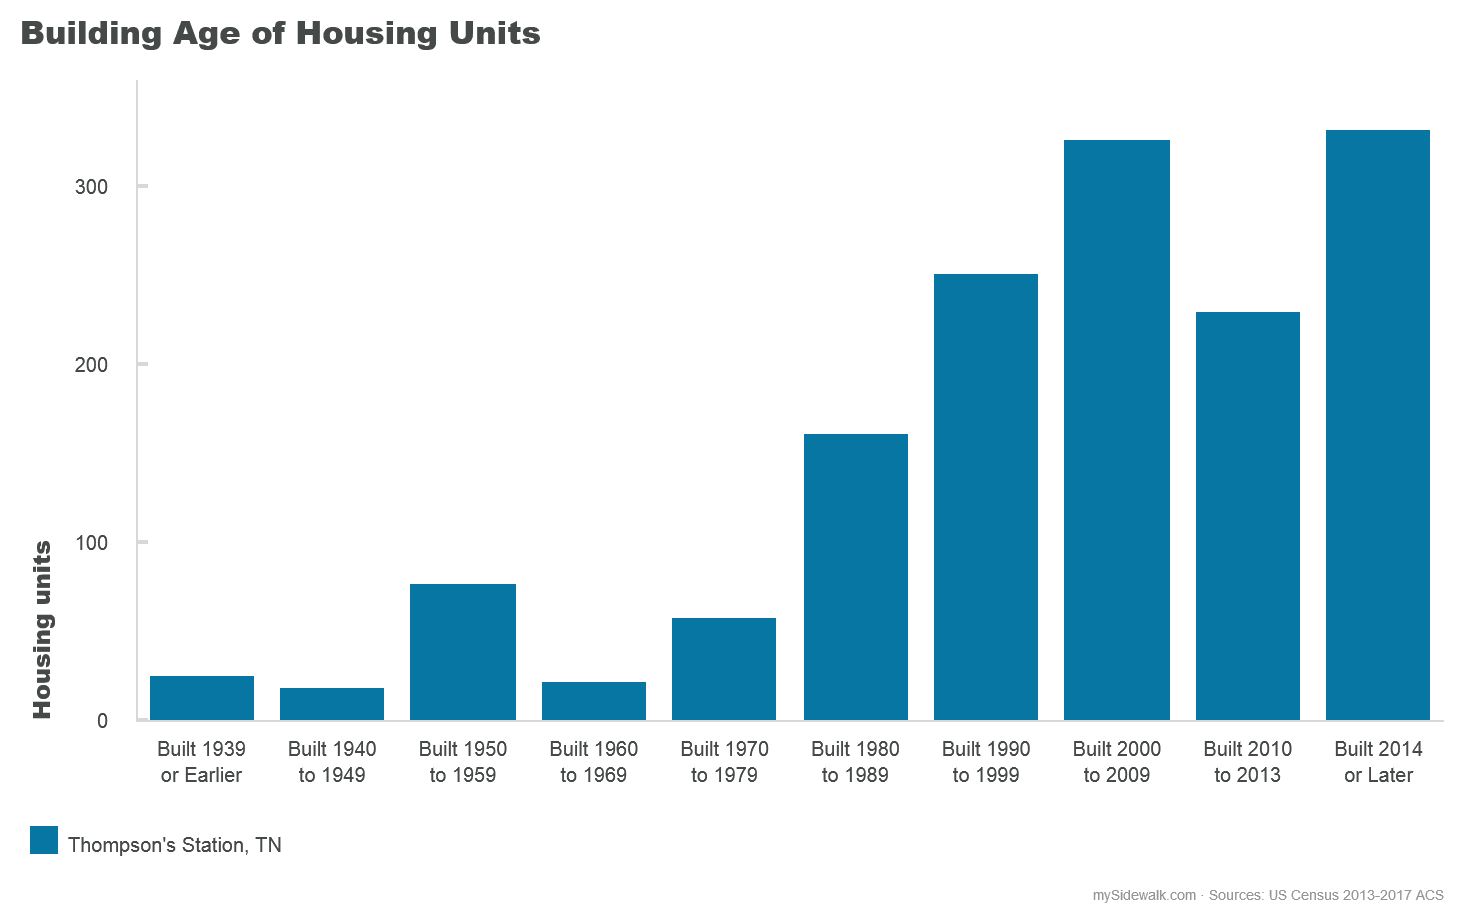 Building Age of Housing Units